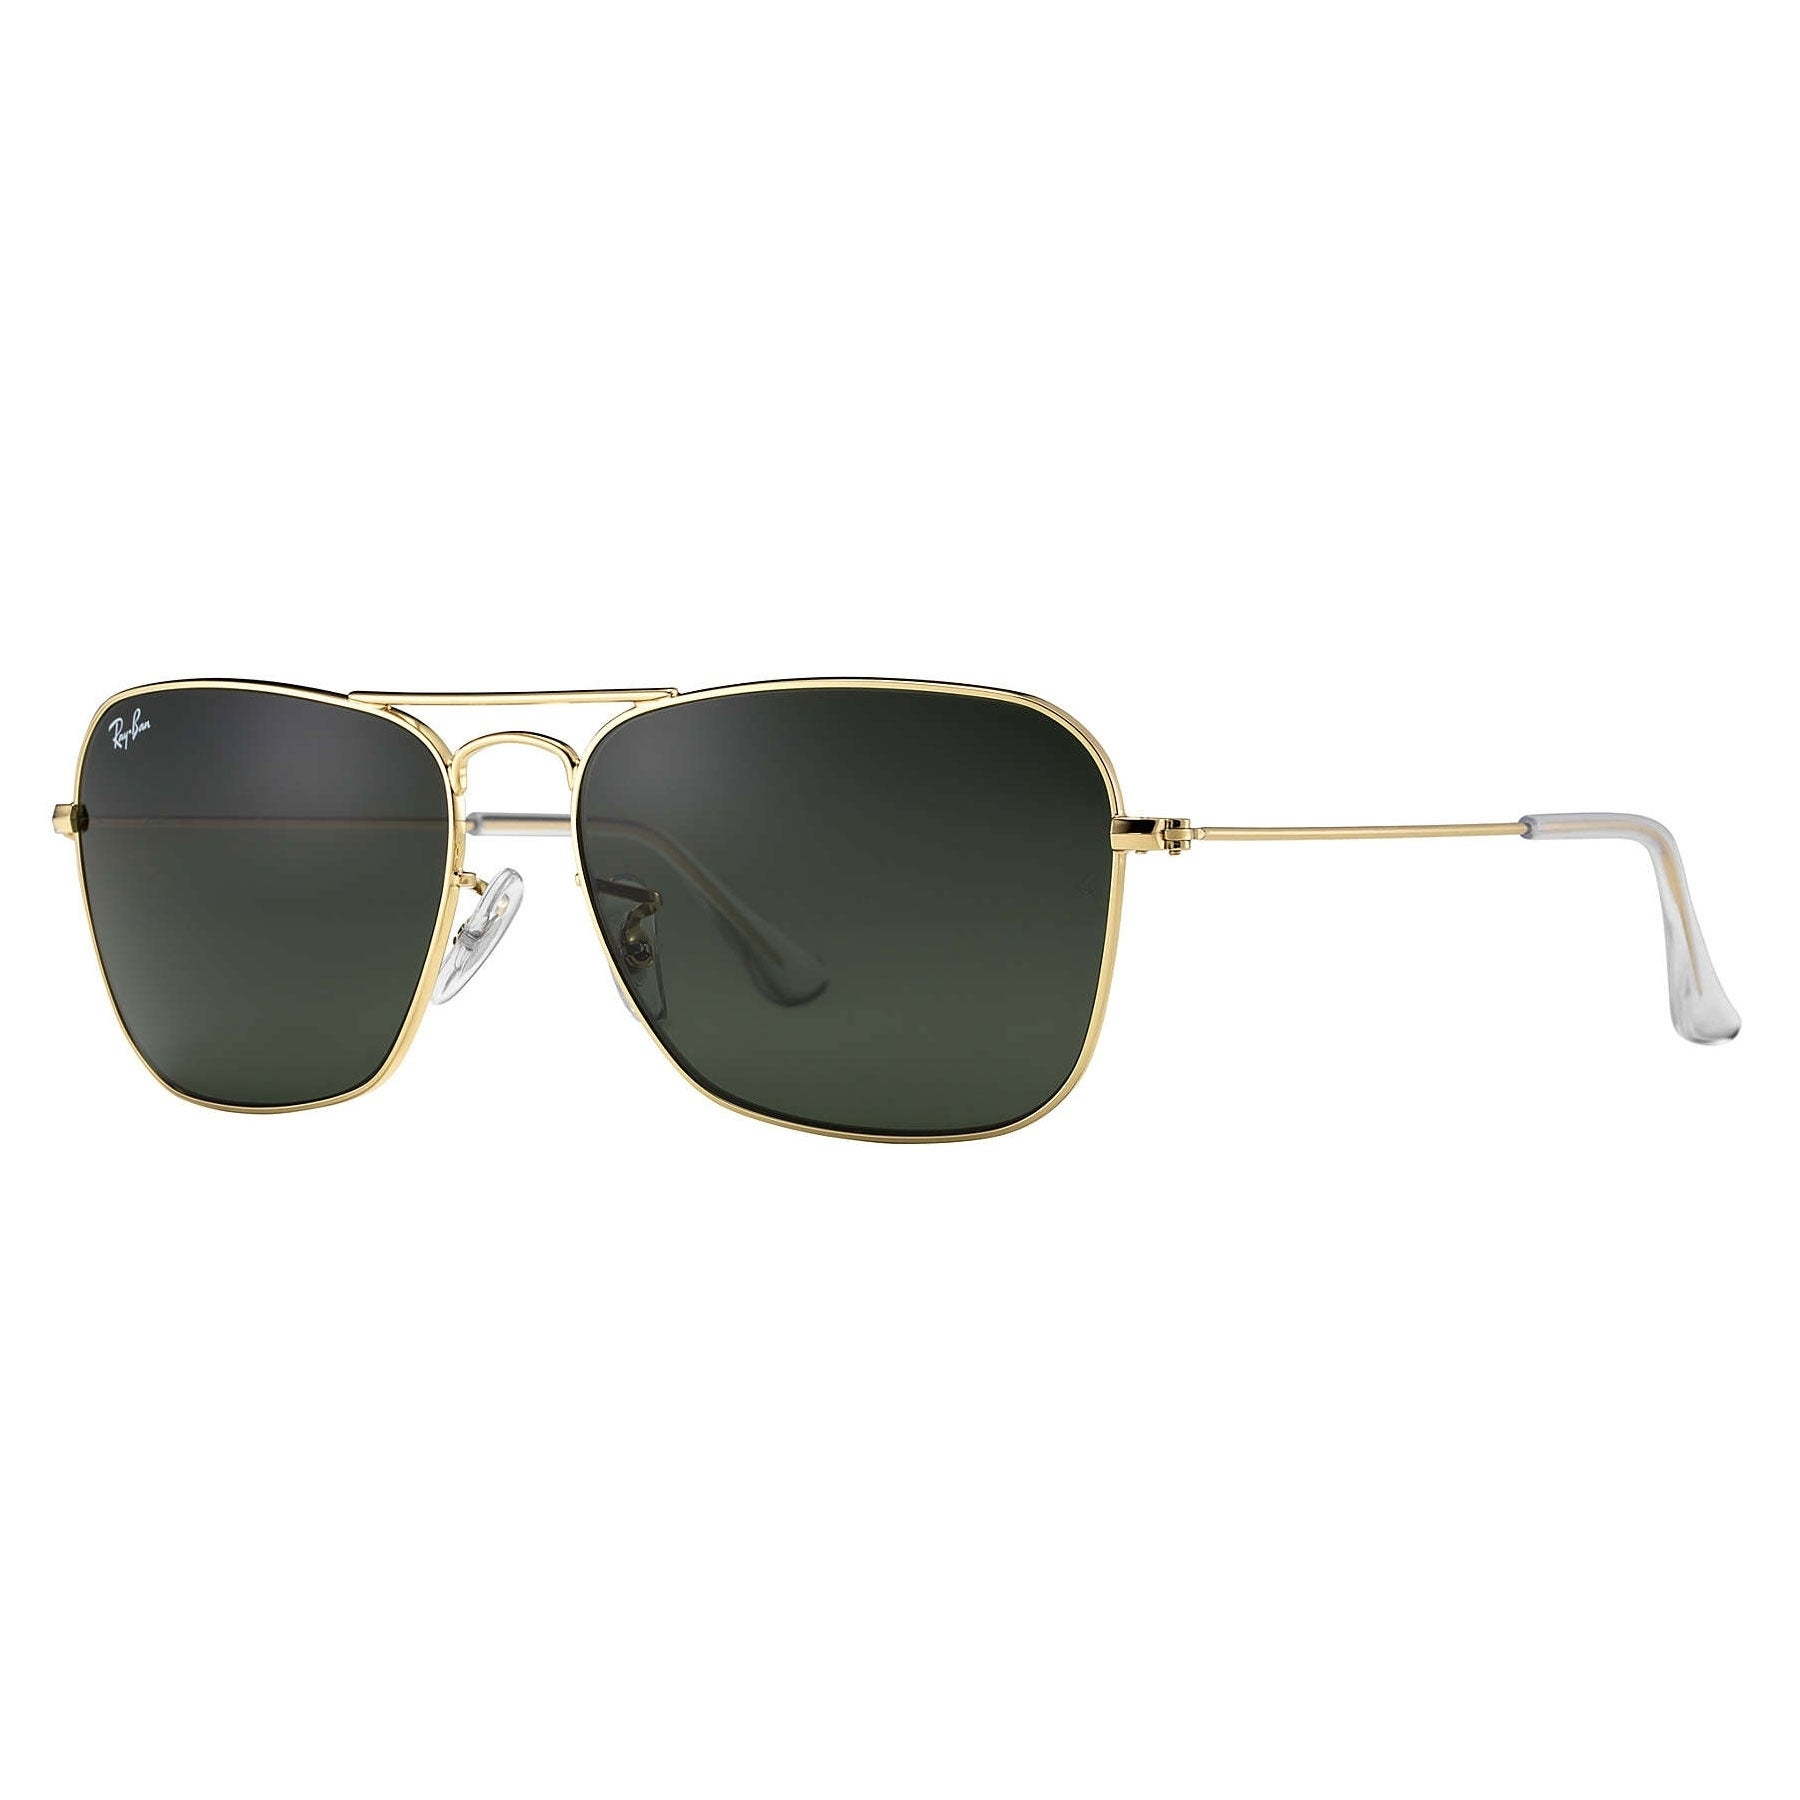 64aa4213d4 Shop Ray-Ban Caravan RB3136 Unisex Gold Frame Green Classic Lens Sunglasses  - Gold Green - Free Shipping Today - Overstock.com - 6385607